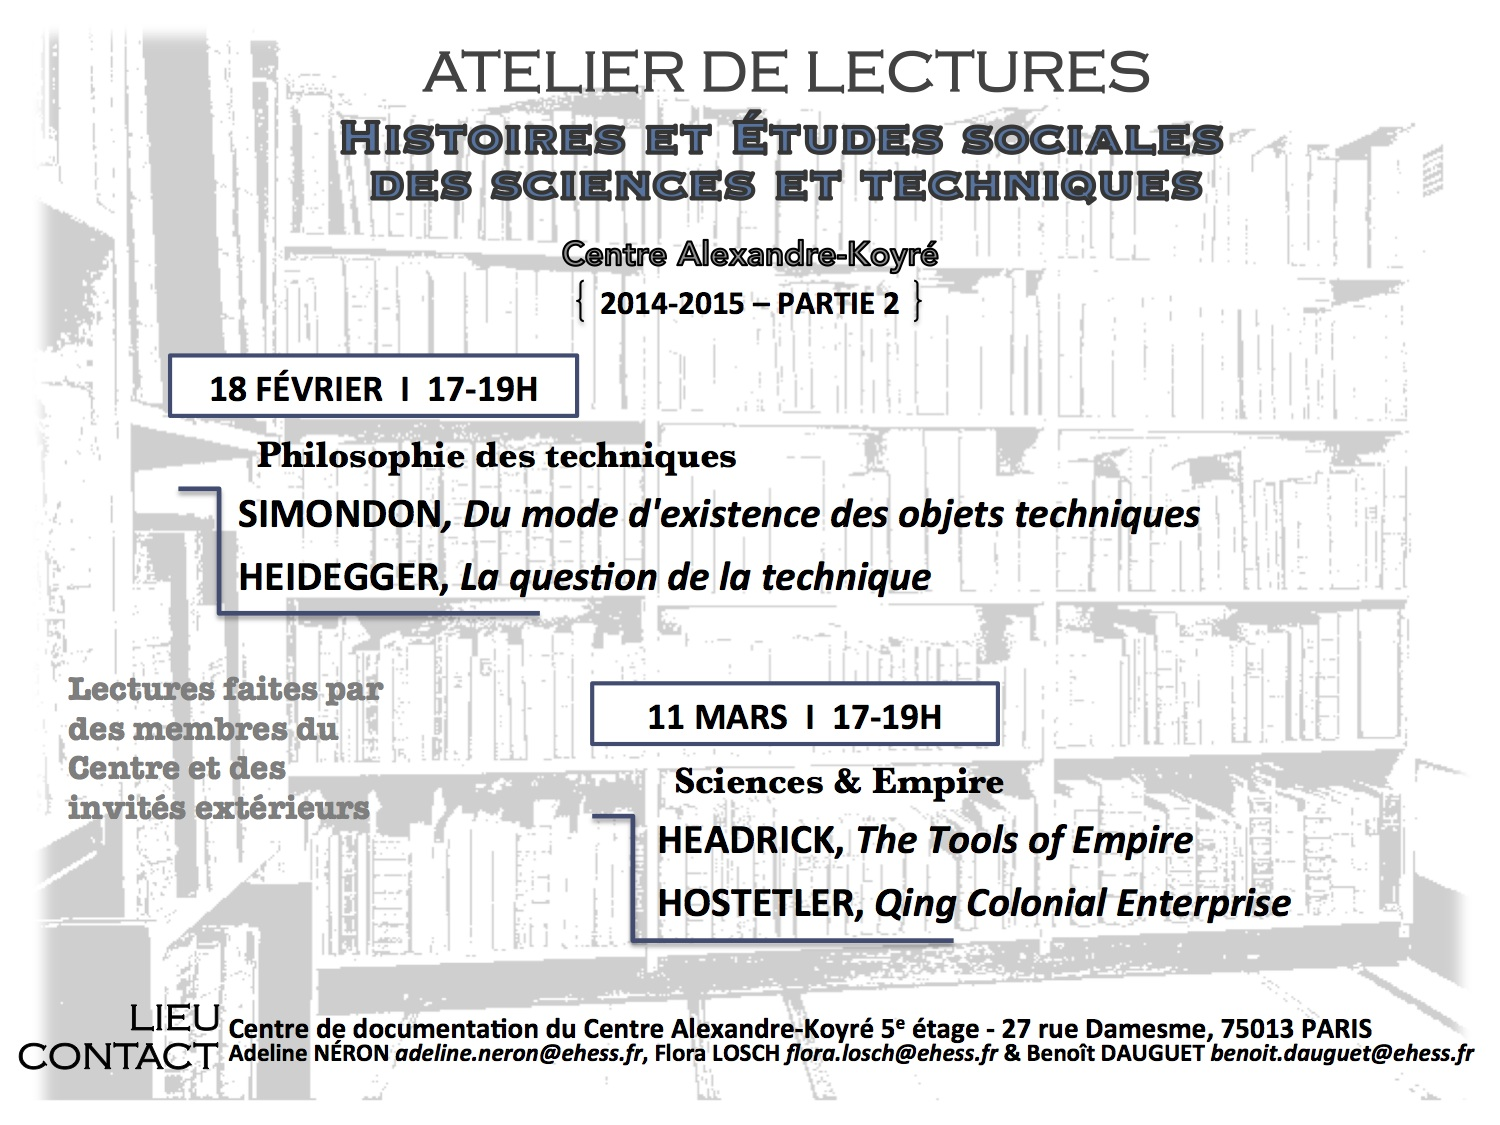 Atelier de lectures du CAK : Sciences & Empire